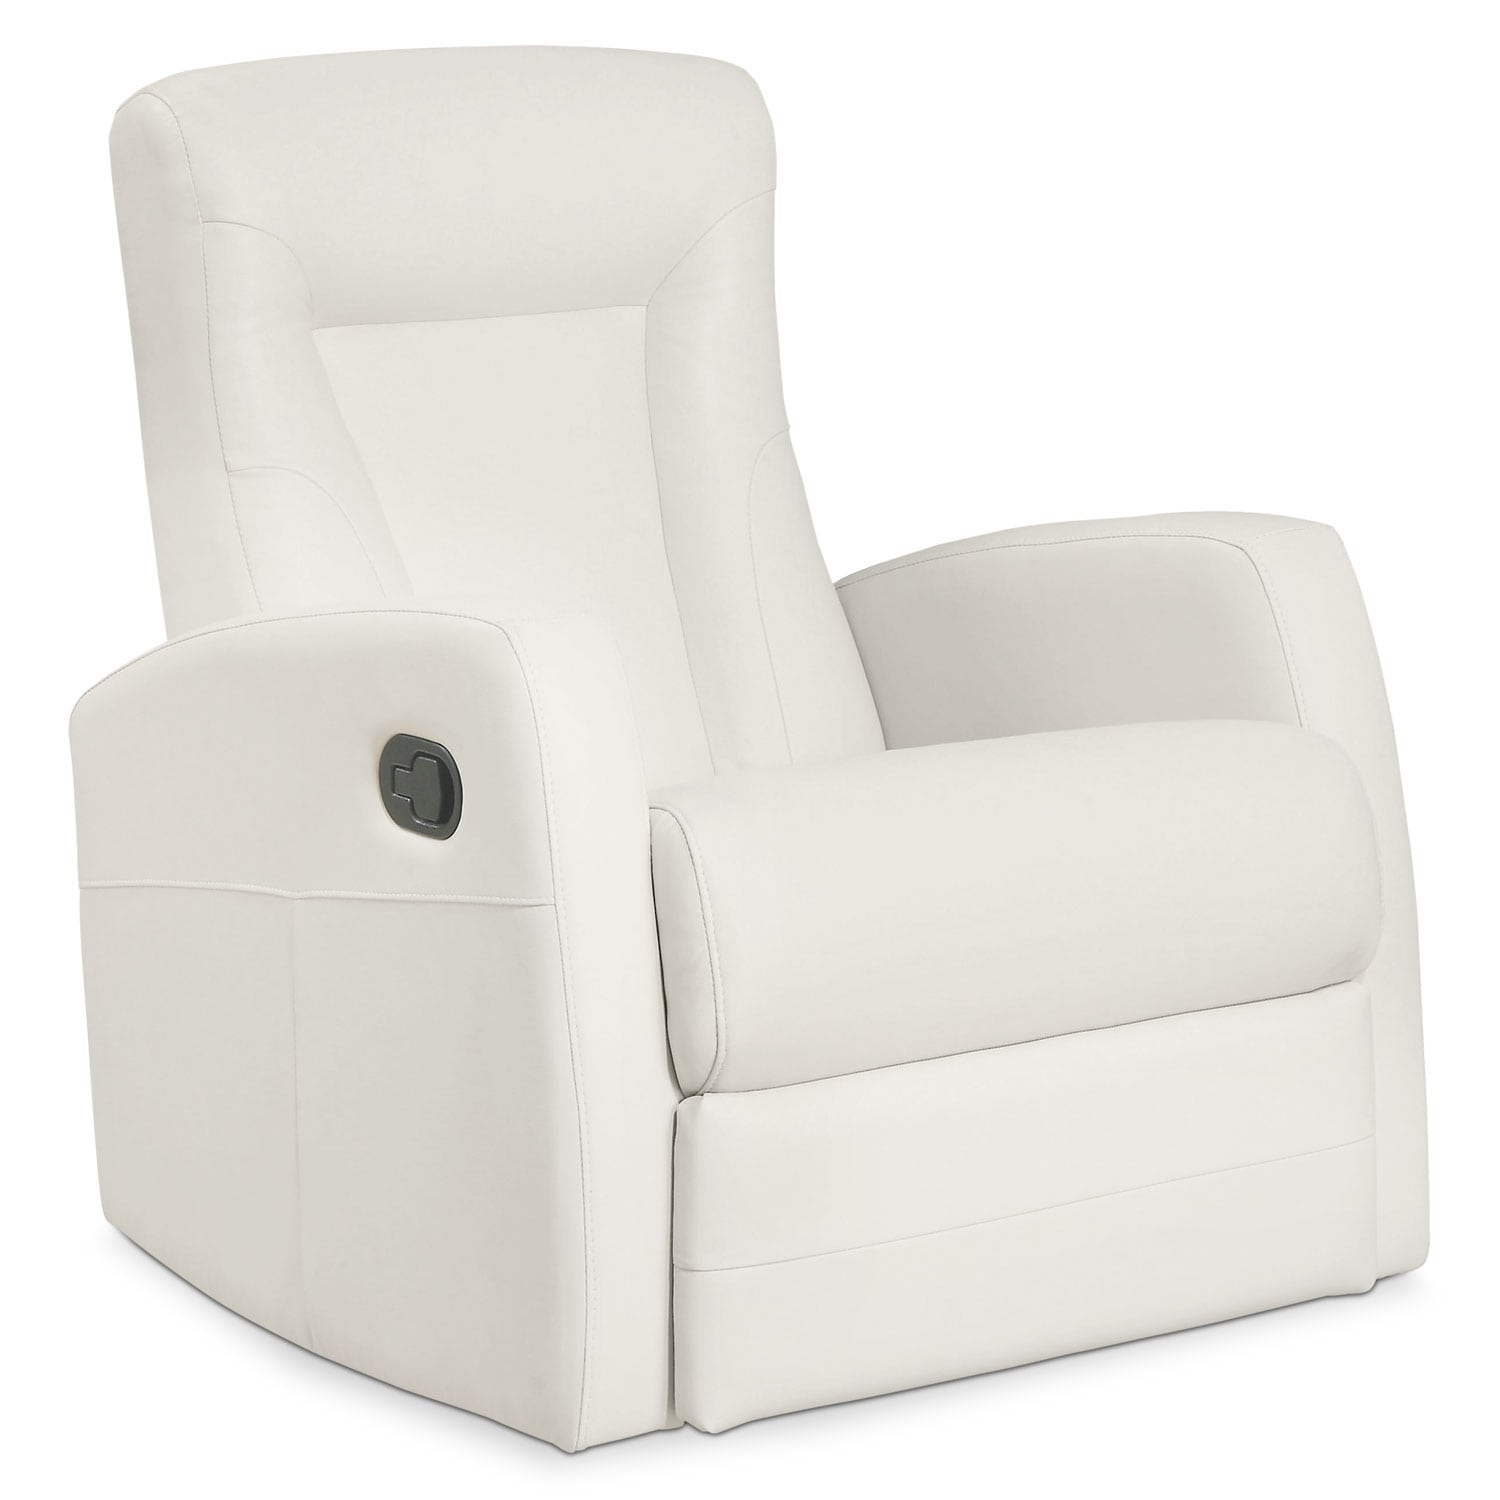 Molly Bonded Leather Swivel Recliner - Ivory